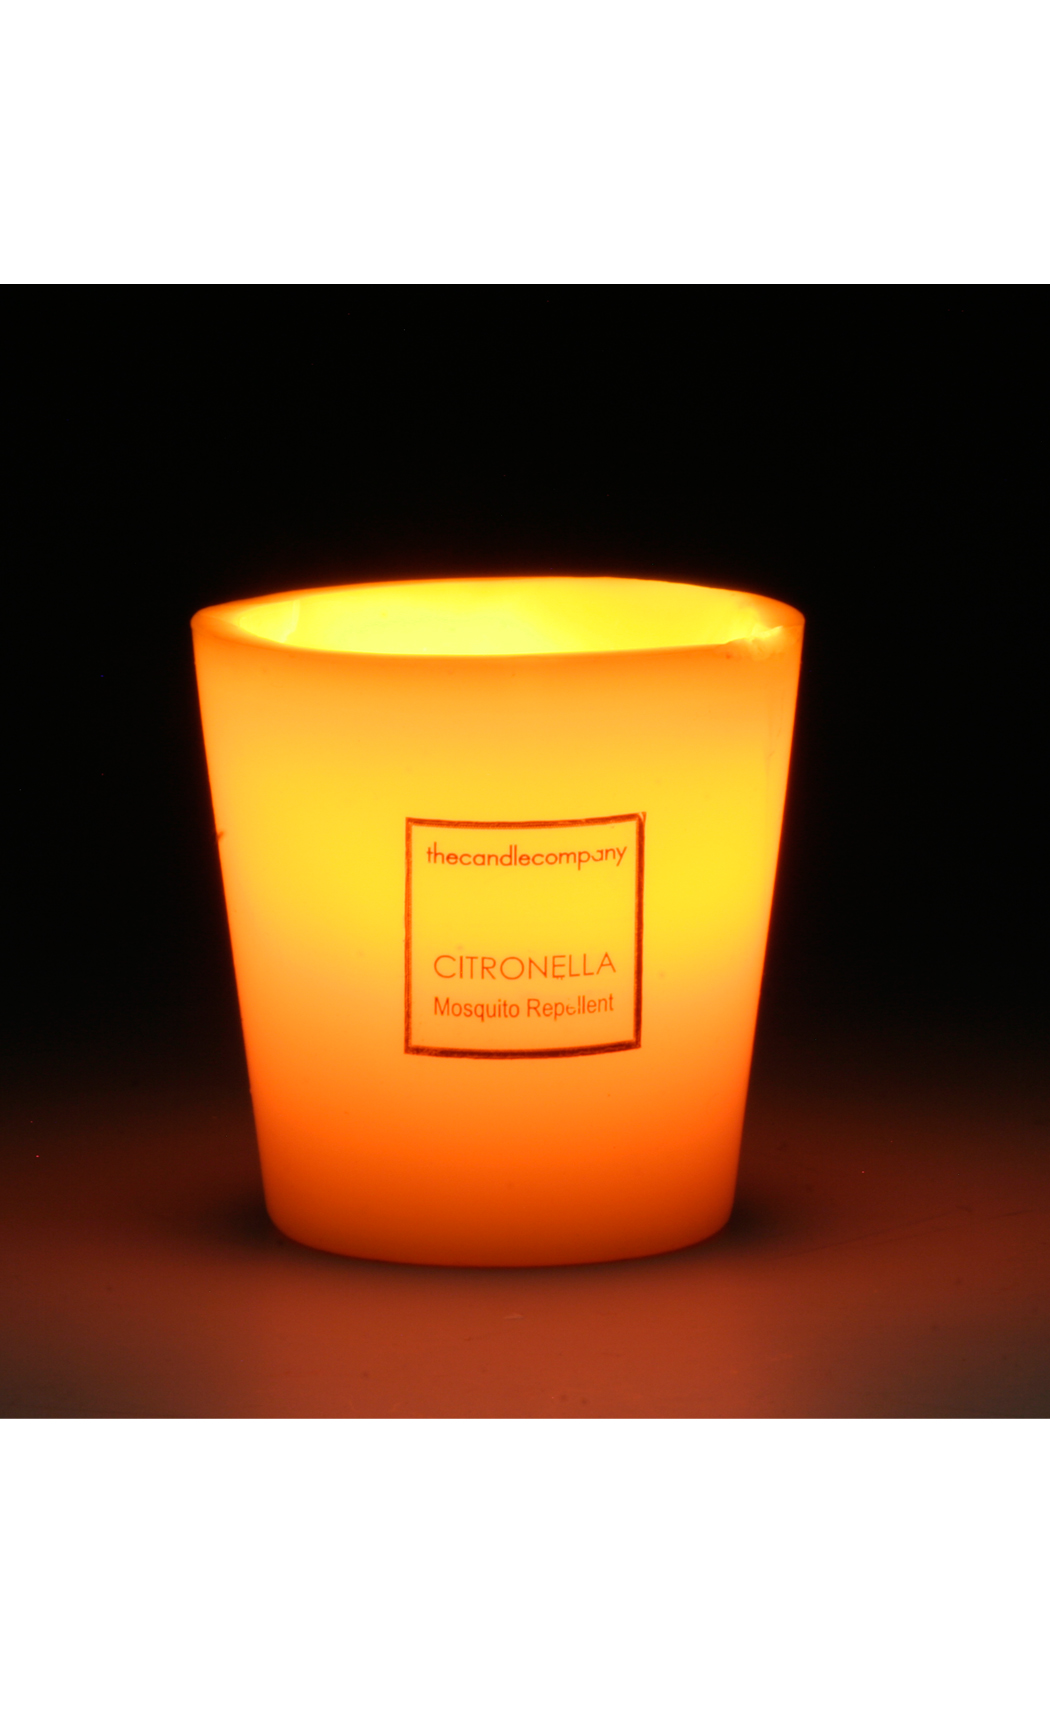 Citronella Scented and Mosquito / Bug RepellingCandle by The Candle Co. - Shop Online in India